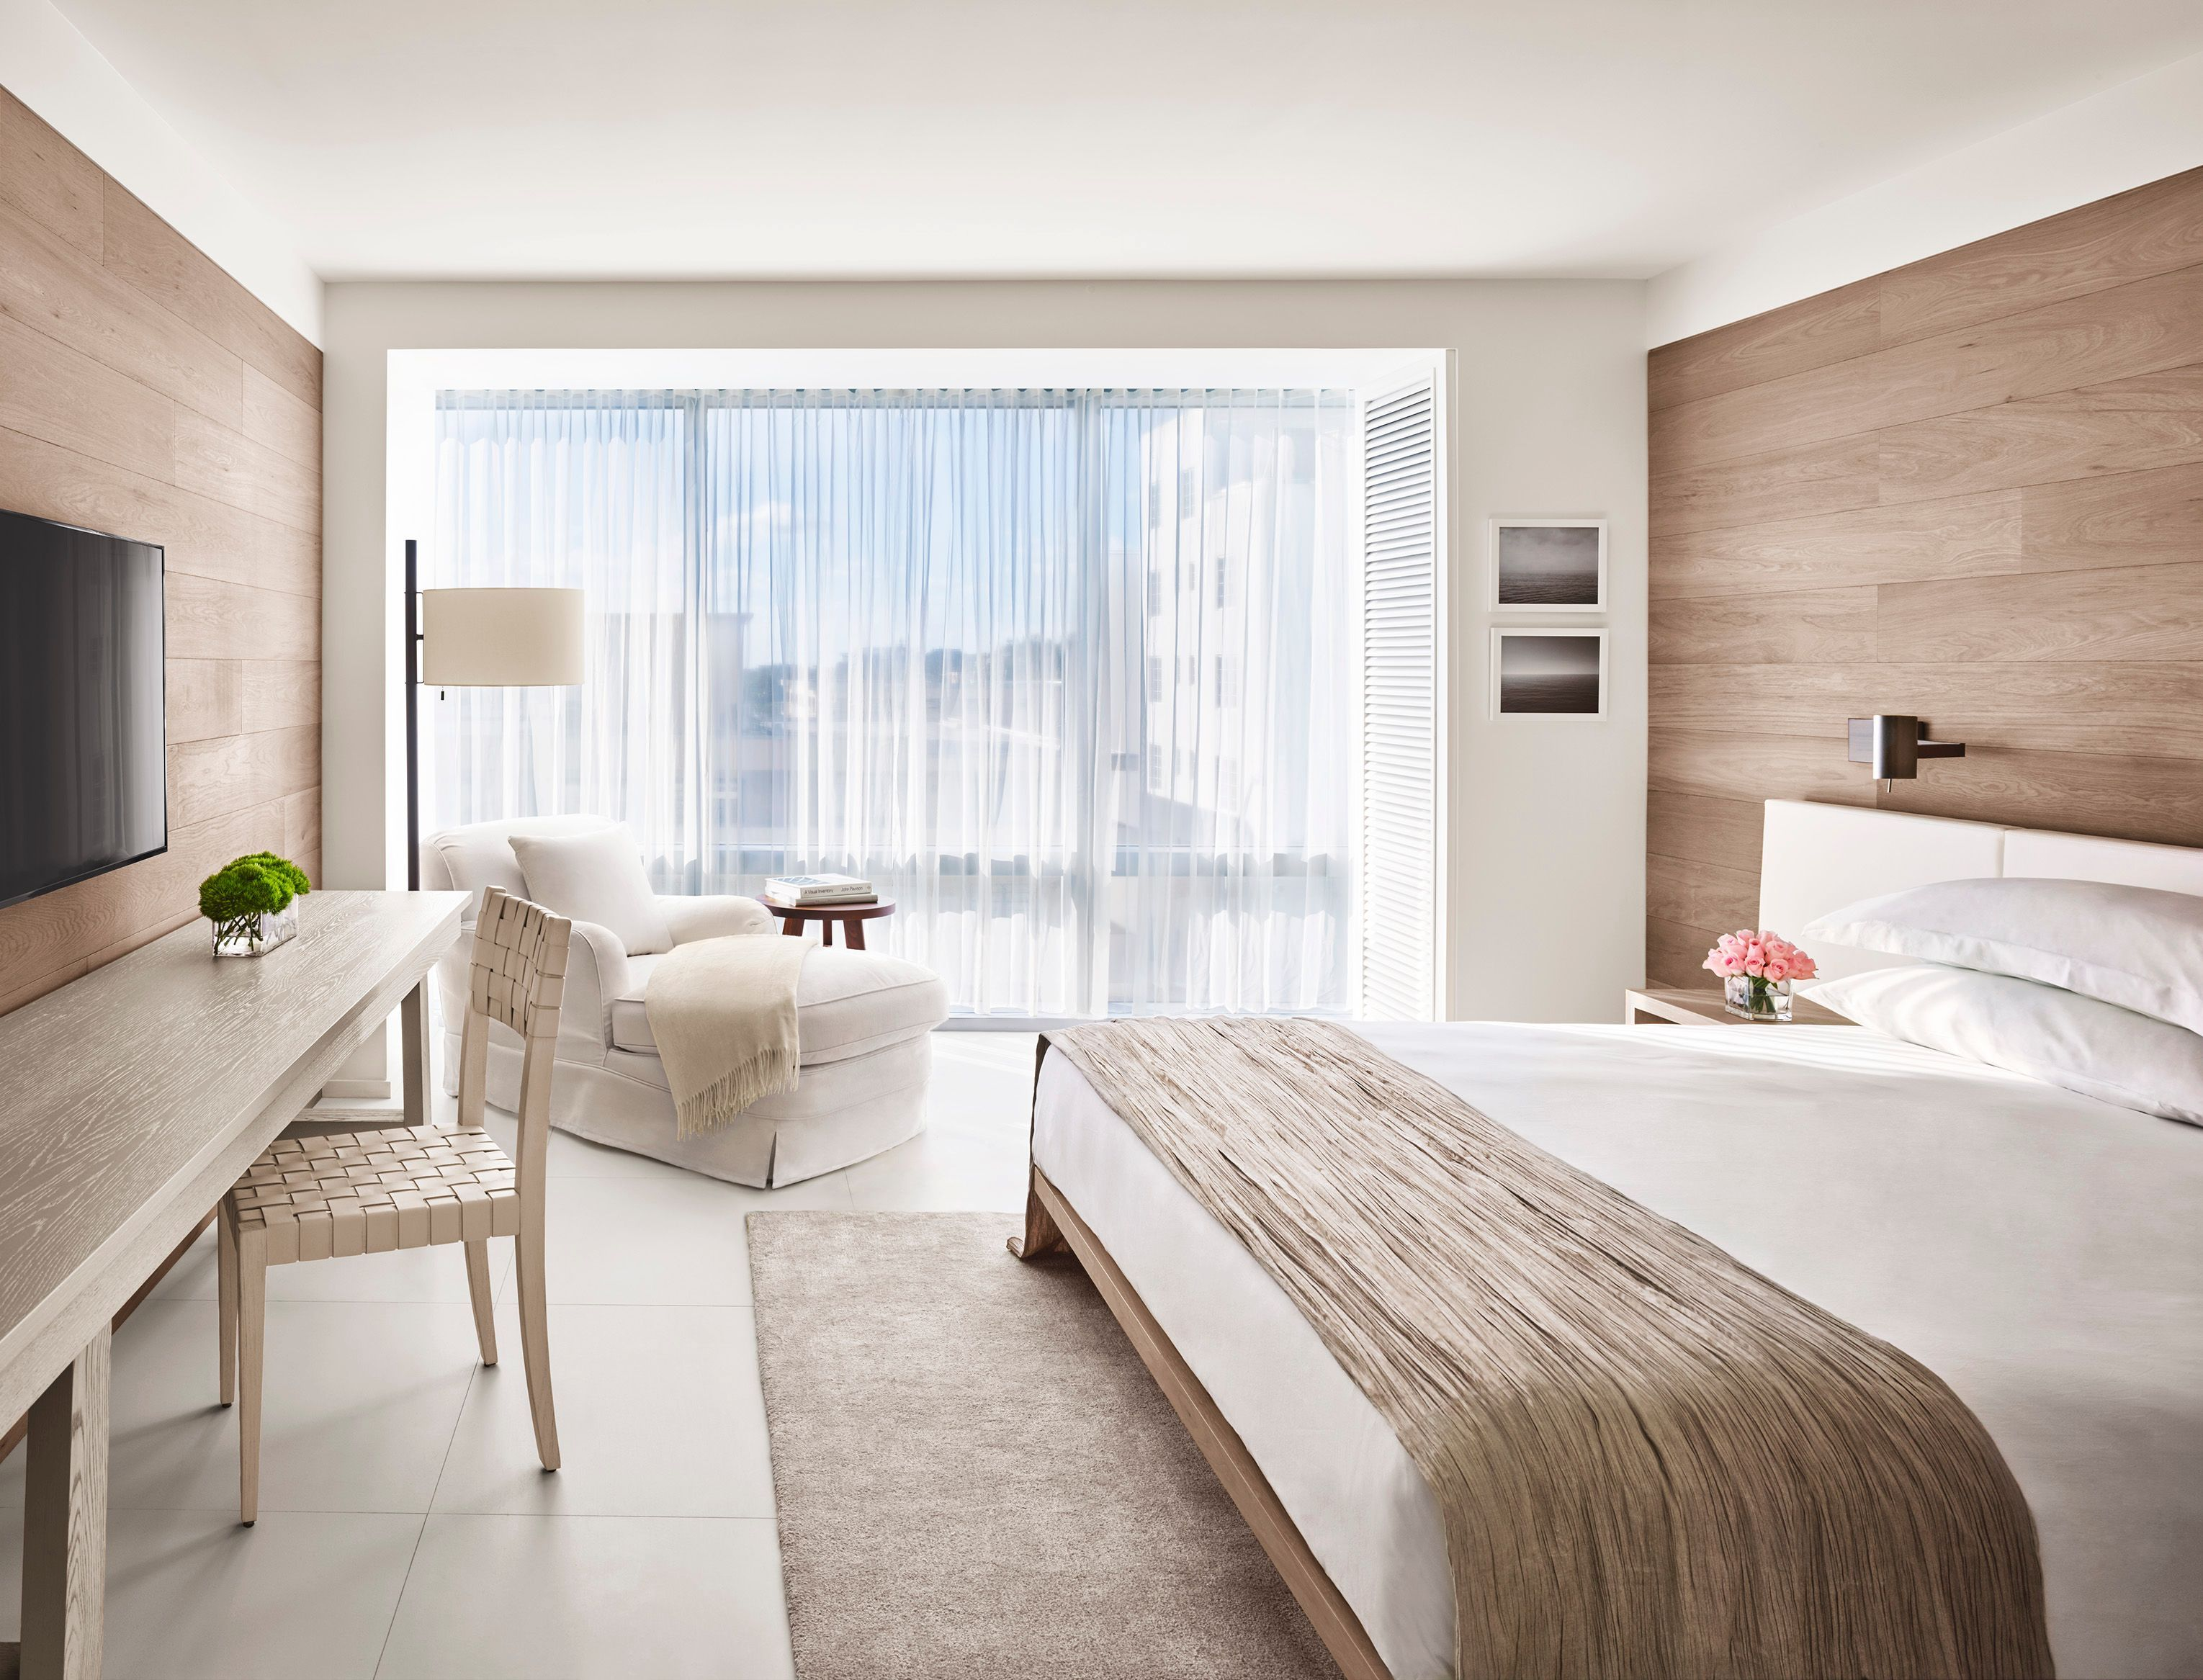 Yabu pushelberg the miami beach edition bedroom luxury for Boutique hotel